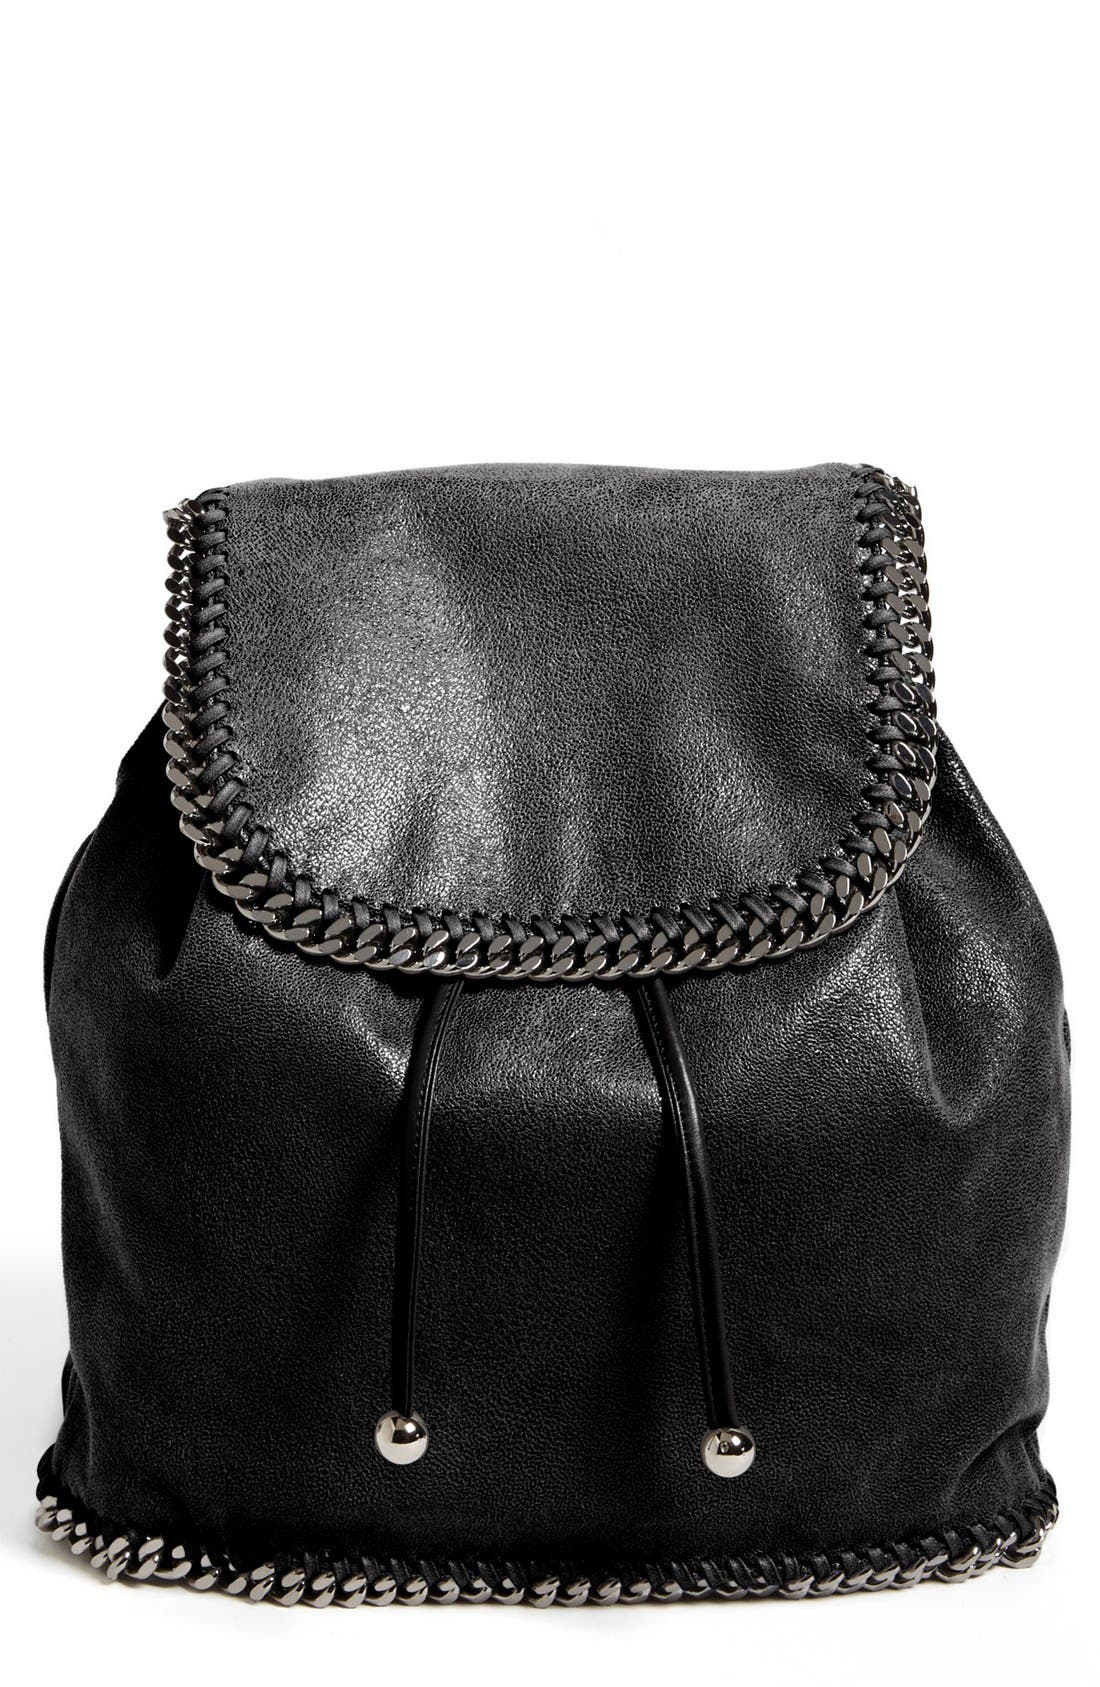 Alternate Image 1 Selected - Stella McCartney 'Falabella - Shaggy Deer' Backpack